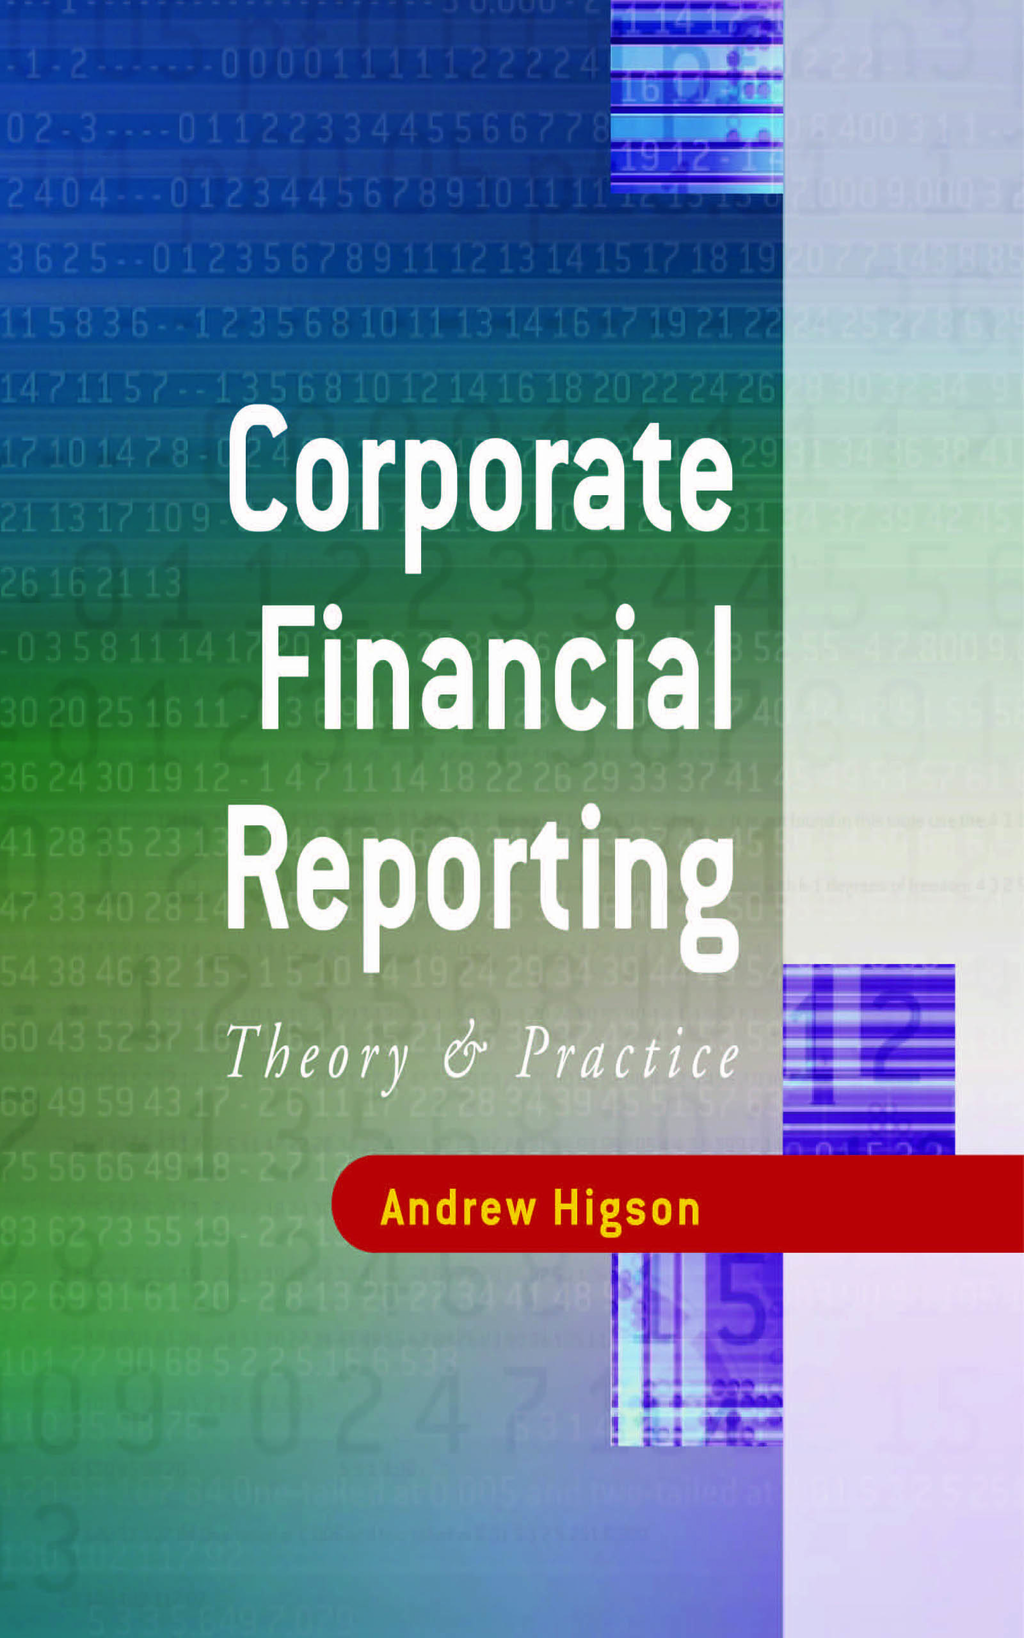 Corporate Financial Reporting Theory and Practice